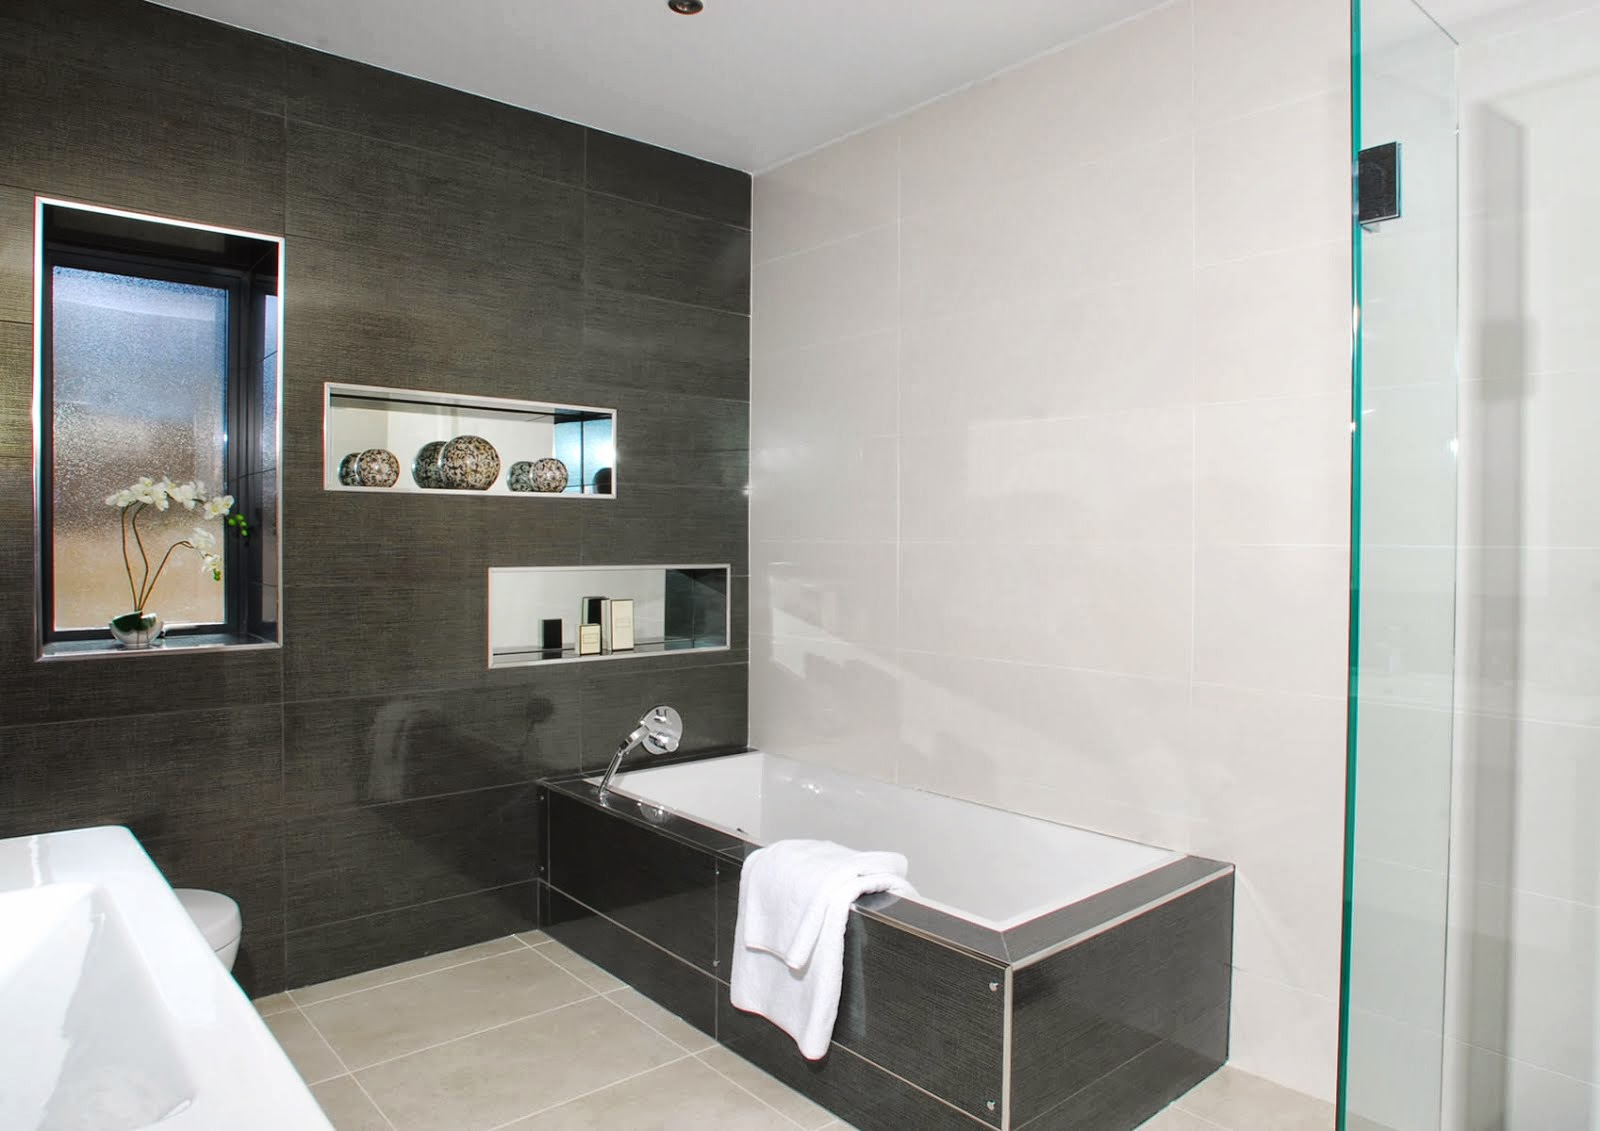 Bathroom design ideas uk for Bathroom designs com